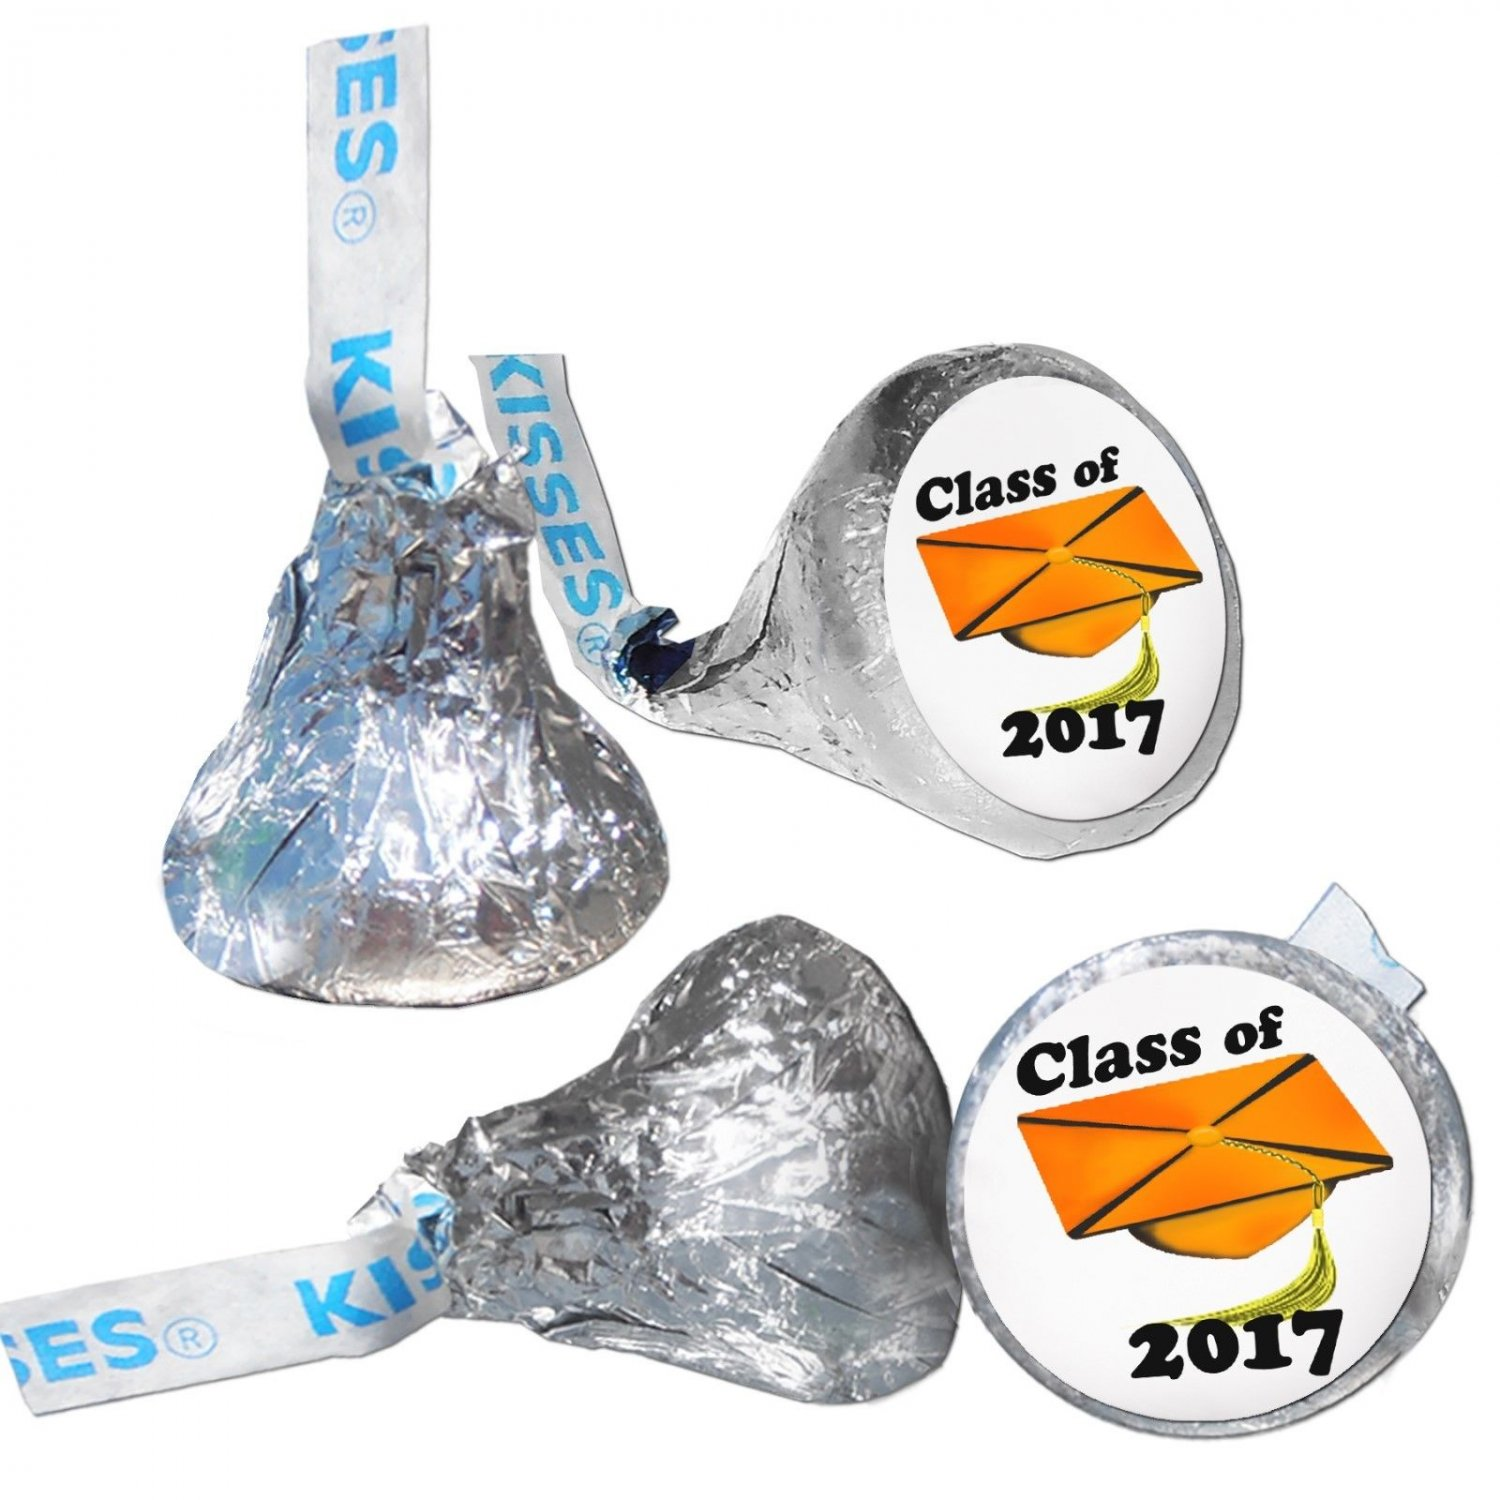 GRADUATION PARTY SUPPLIES 108 HERSHEY KISSES LABELS Class of 2017 Orange Cap